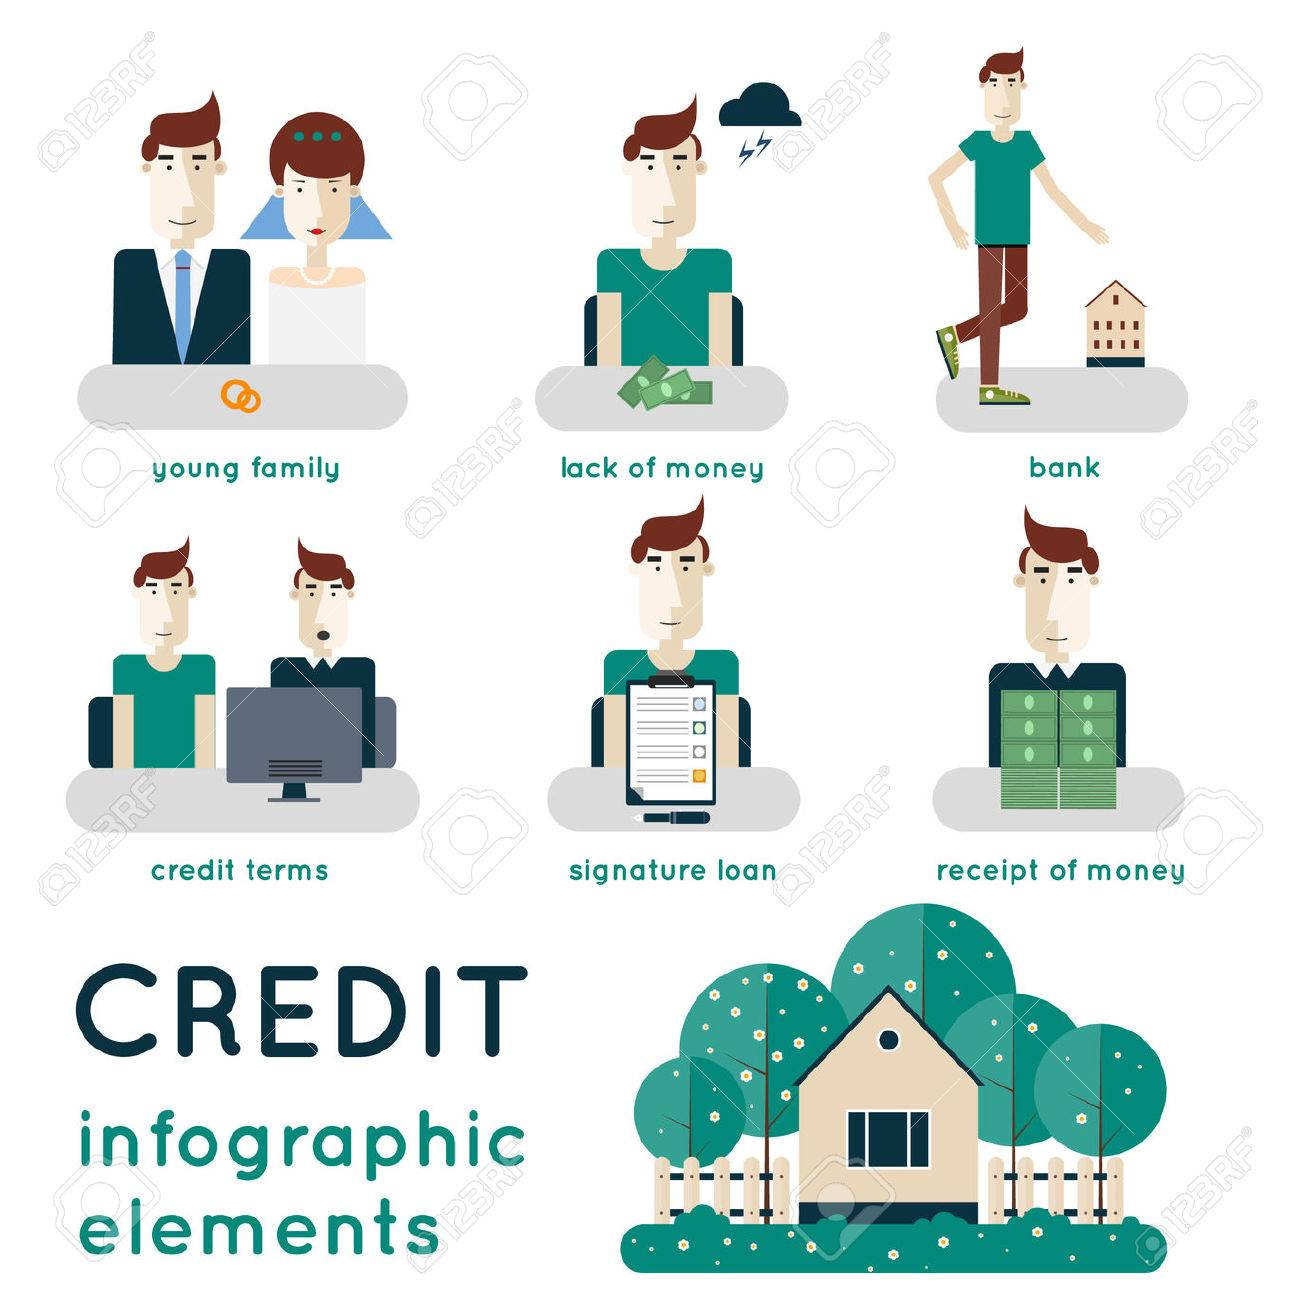 Elements Of Infographic Showing Process Of Getting Loan Saving – Contract for Money Loan